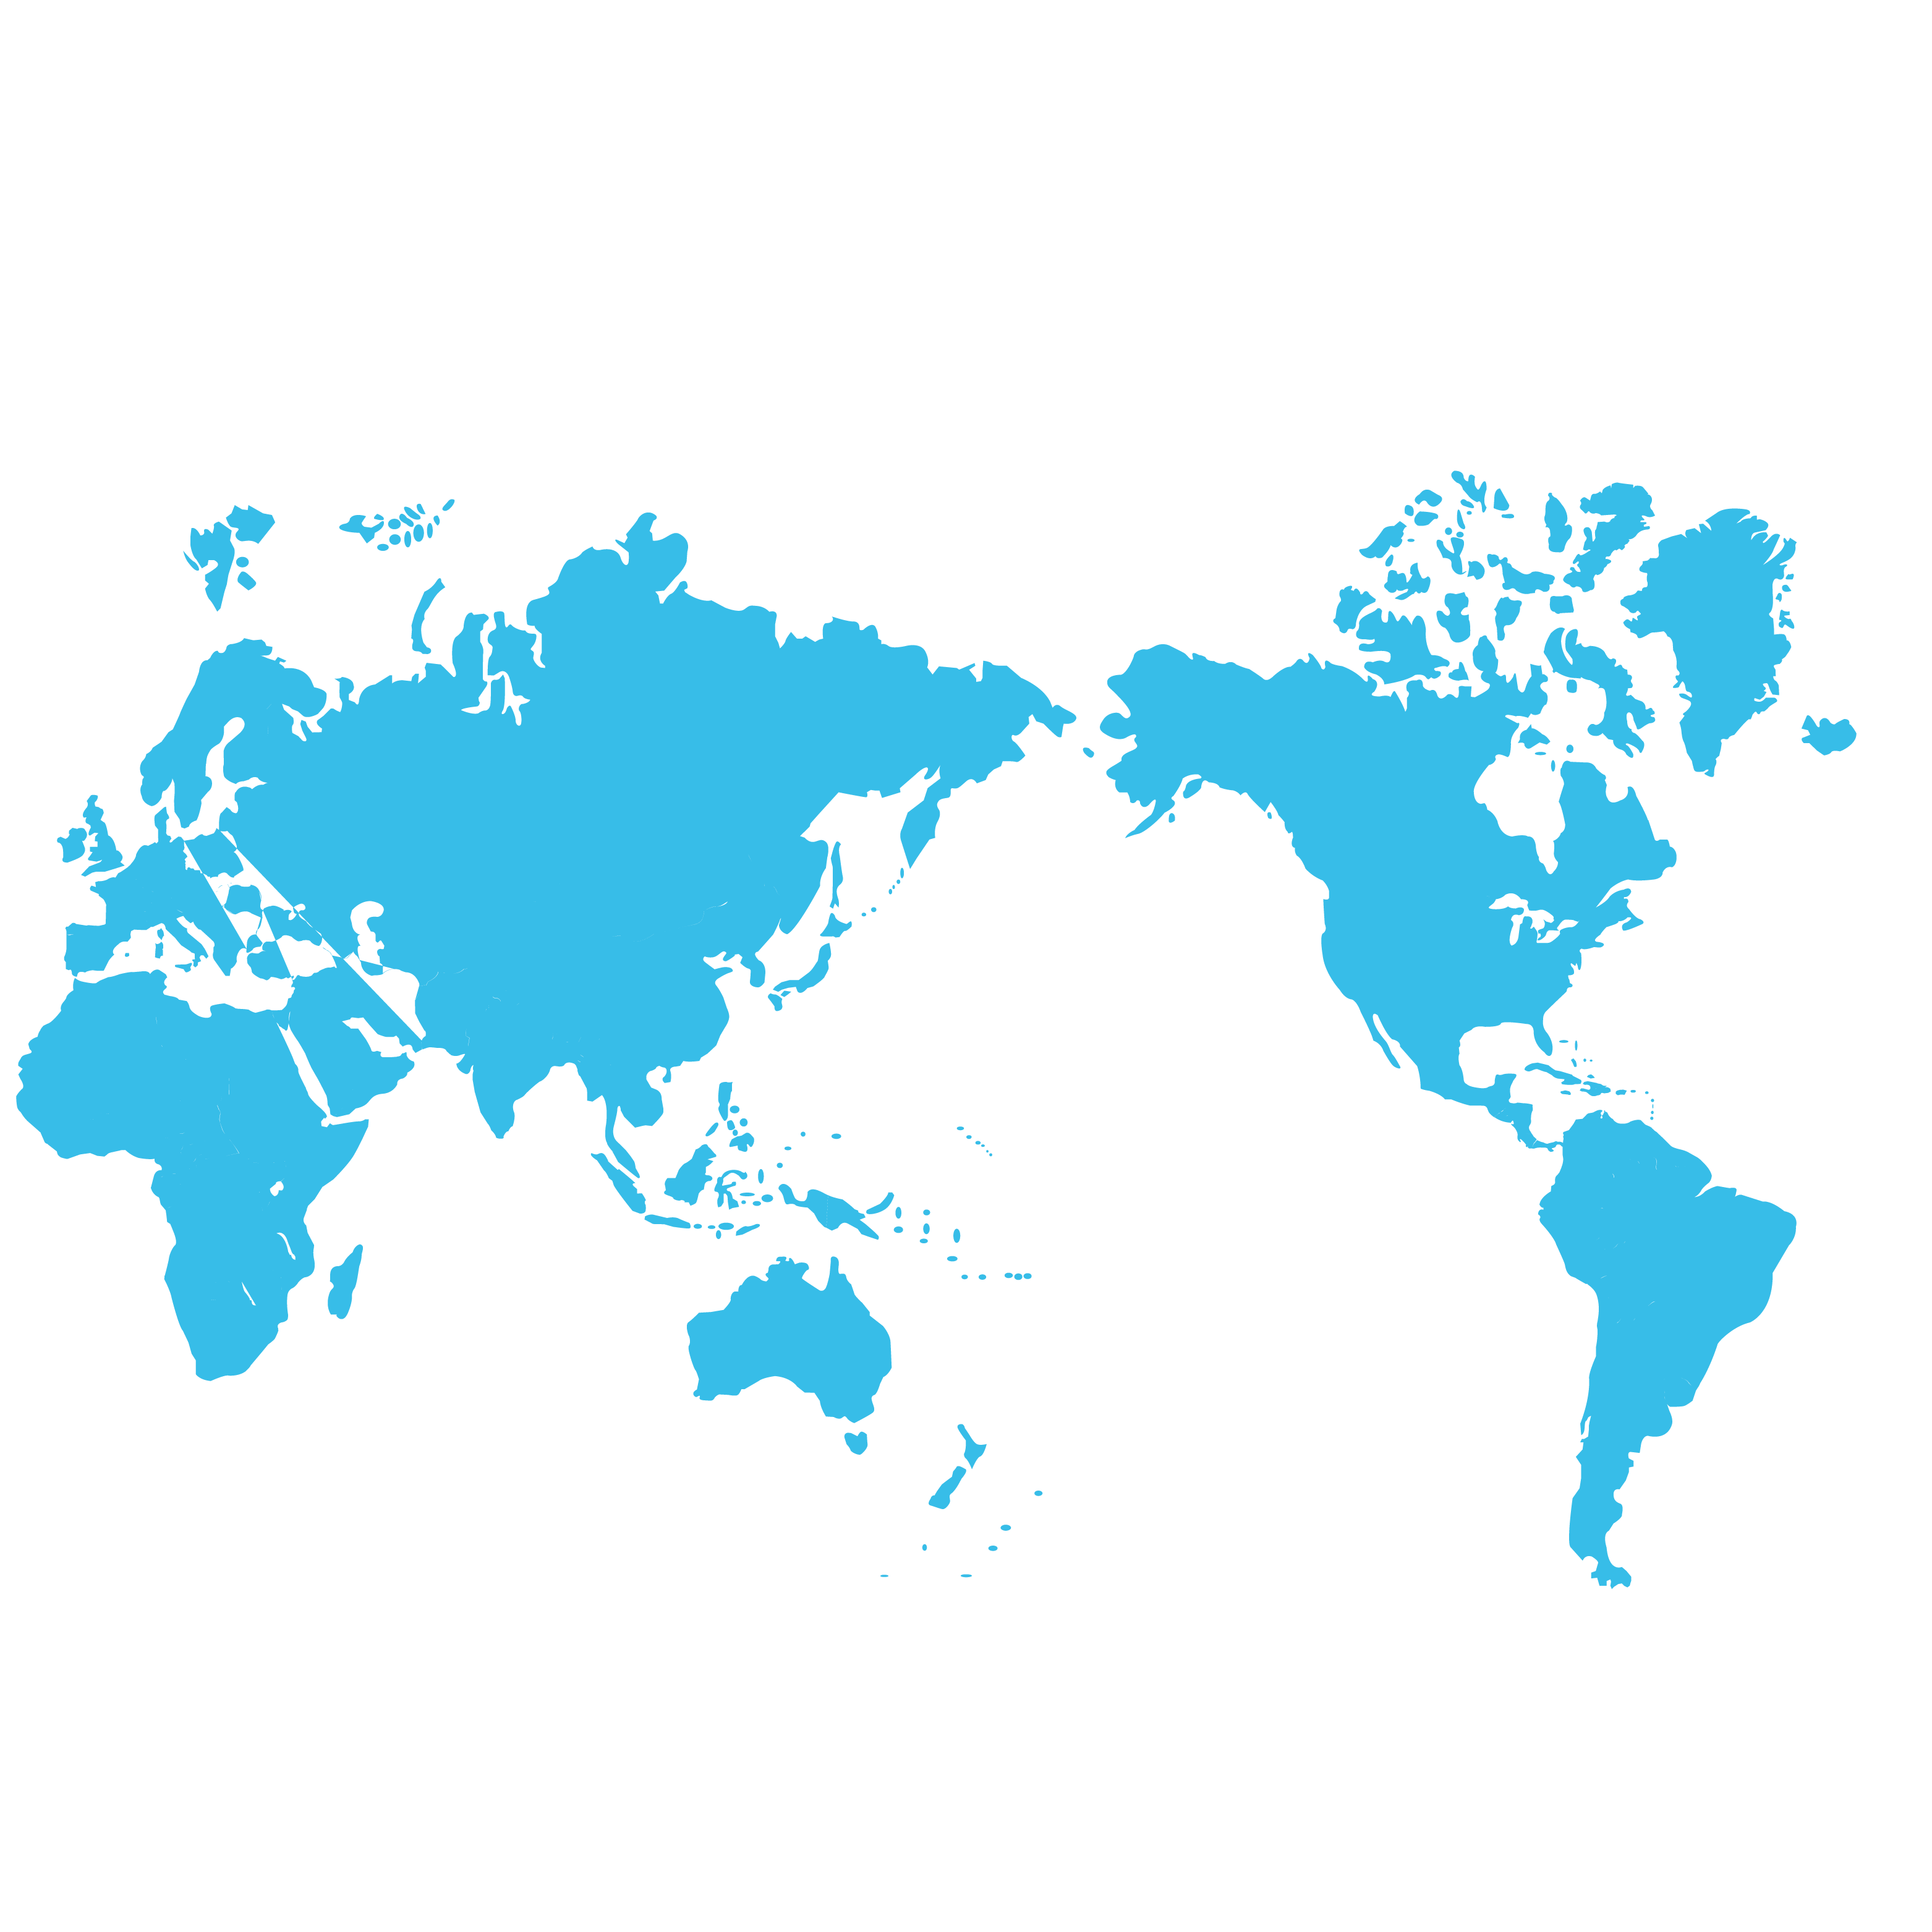 Blue Map Projection Miller Cylindrical World PNG Image